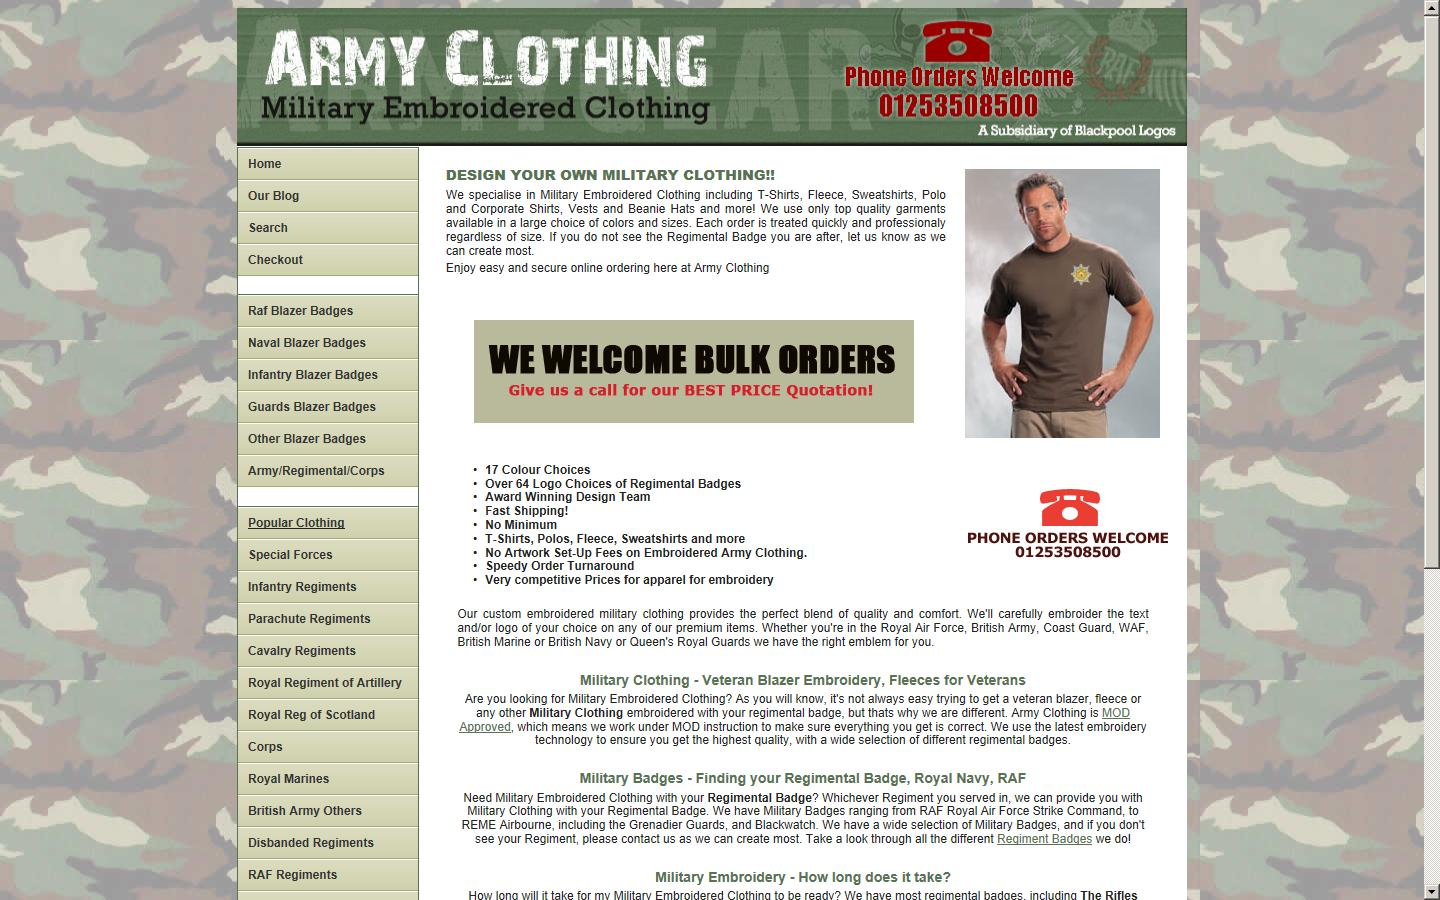 Design your own t shirt military - We Specialise In Military Clothing Specialist Allowing You To Design Your Own Military Uniform With Embroidered Logo Emblems